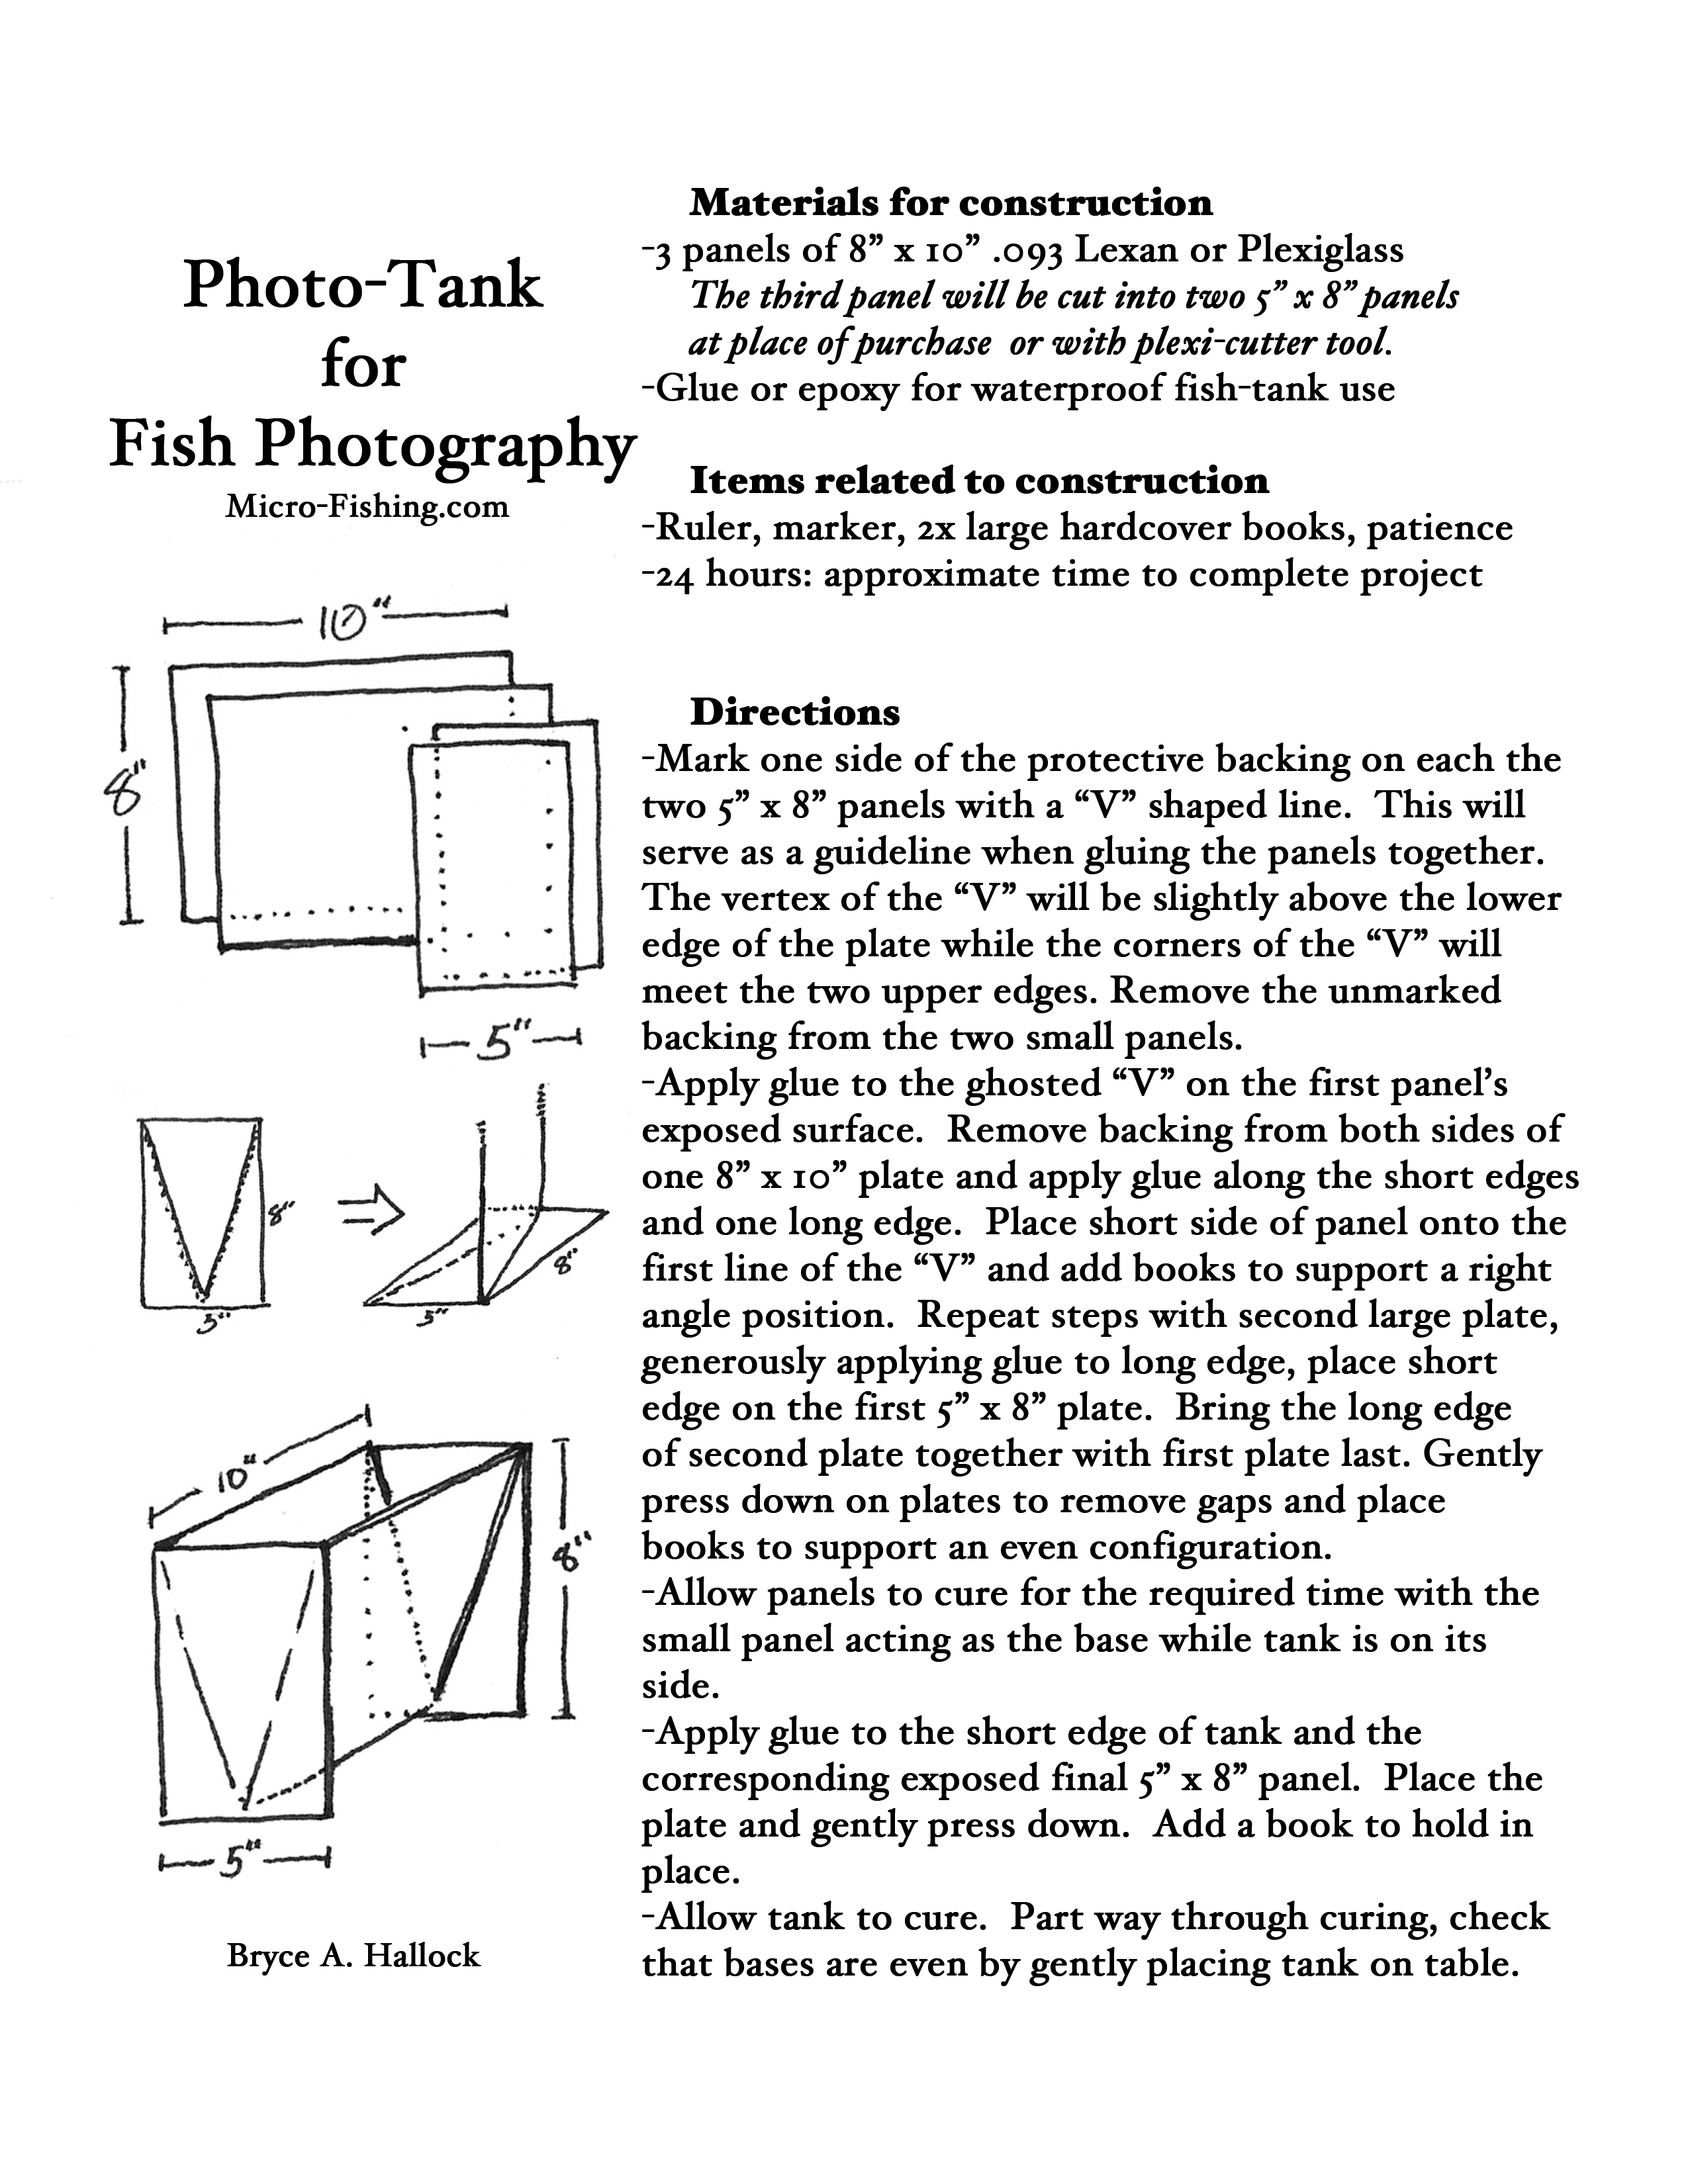 Plans for photo-tank used while micro-fishing